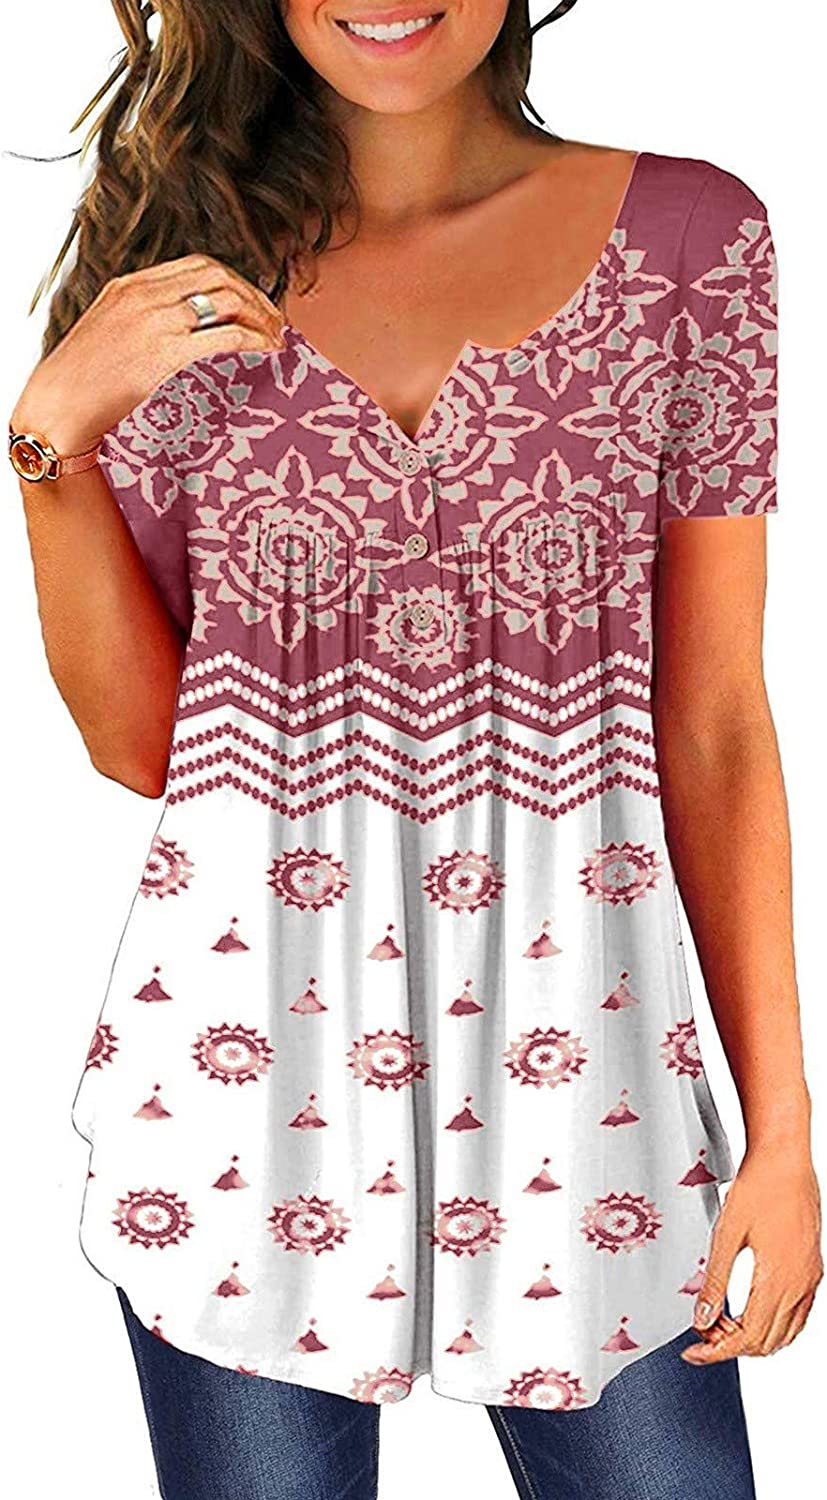 Aukbays Womens Summer Tops Women's Floral Printed Short Sleeve Henley V Neck T-Shirt Pleated Casual Flowy Tunic Blouses